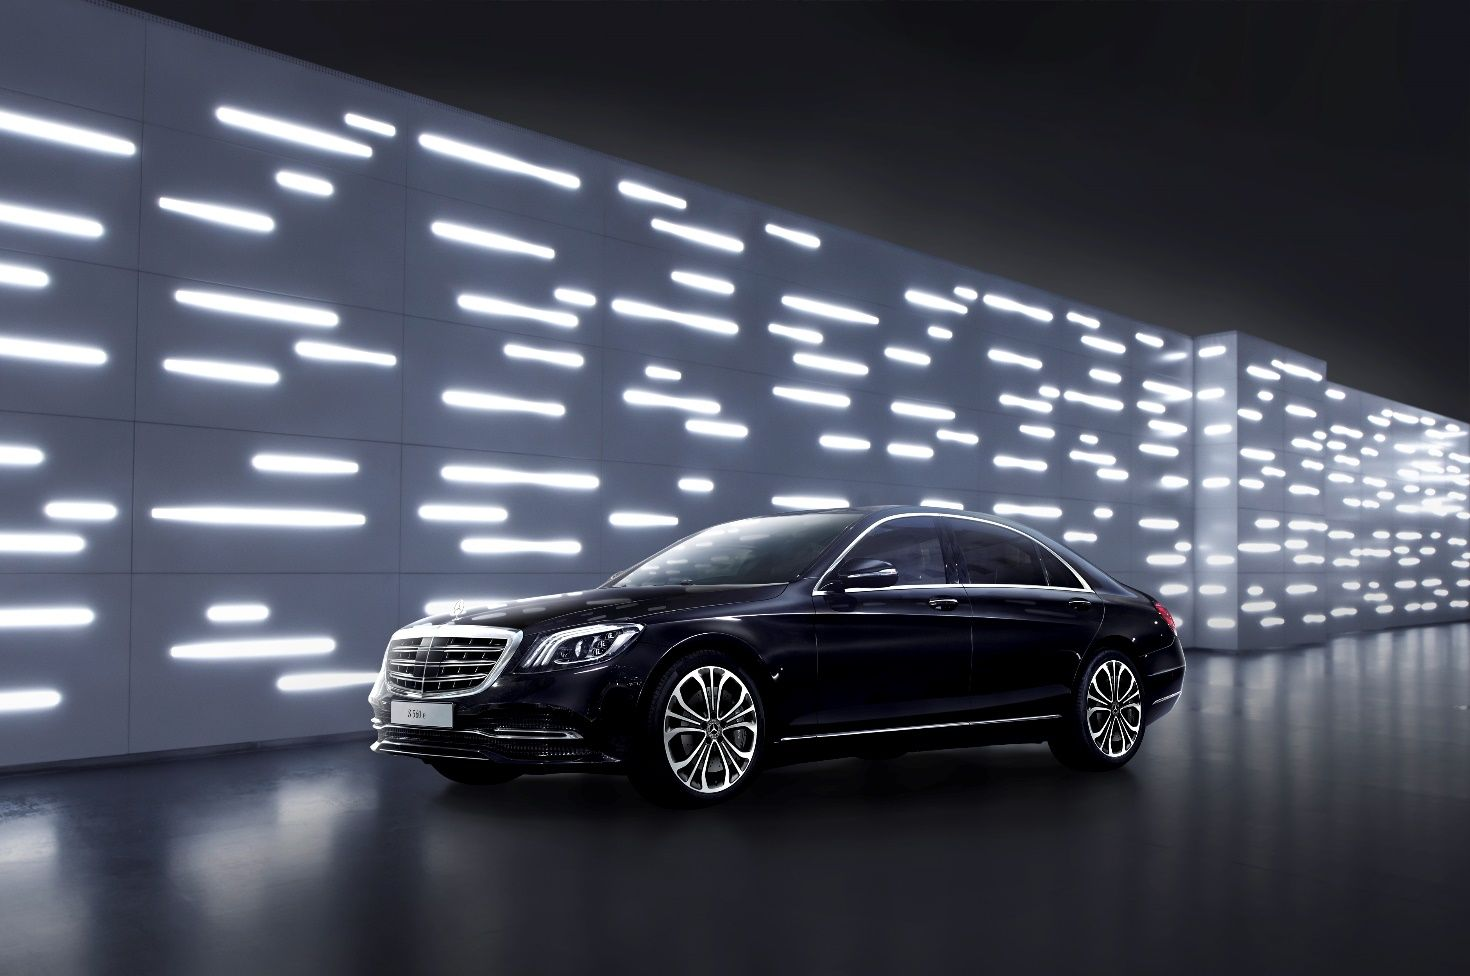 Mercedes-Benz to drive luxury with intelligence   The Star